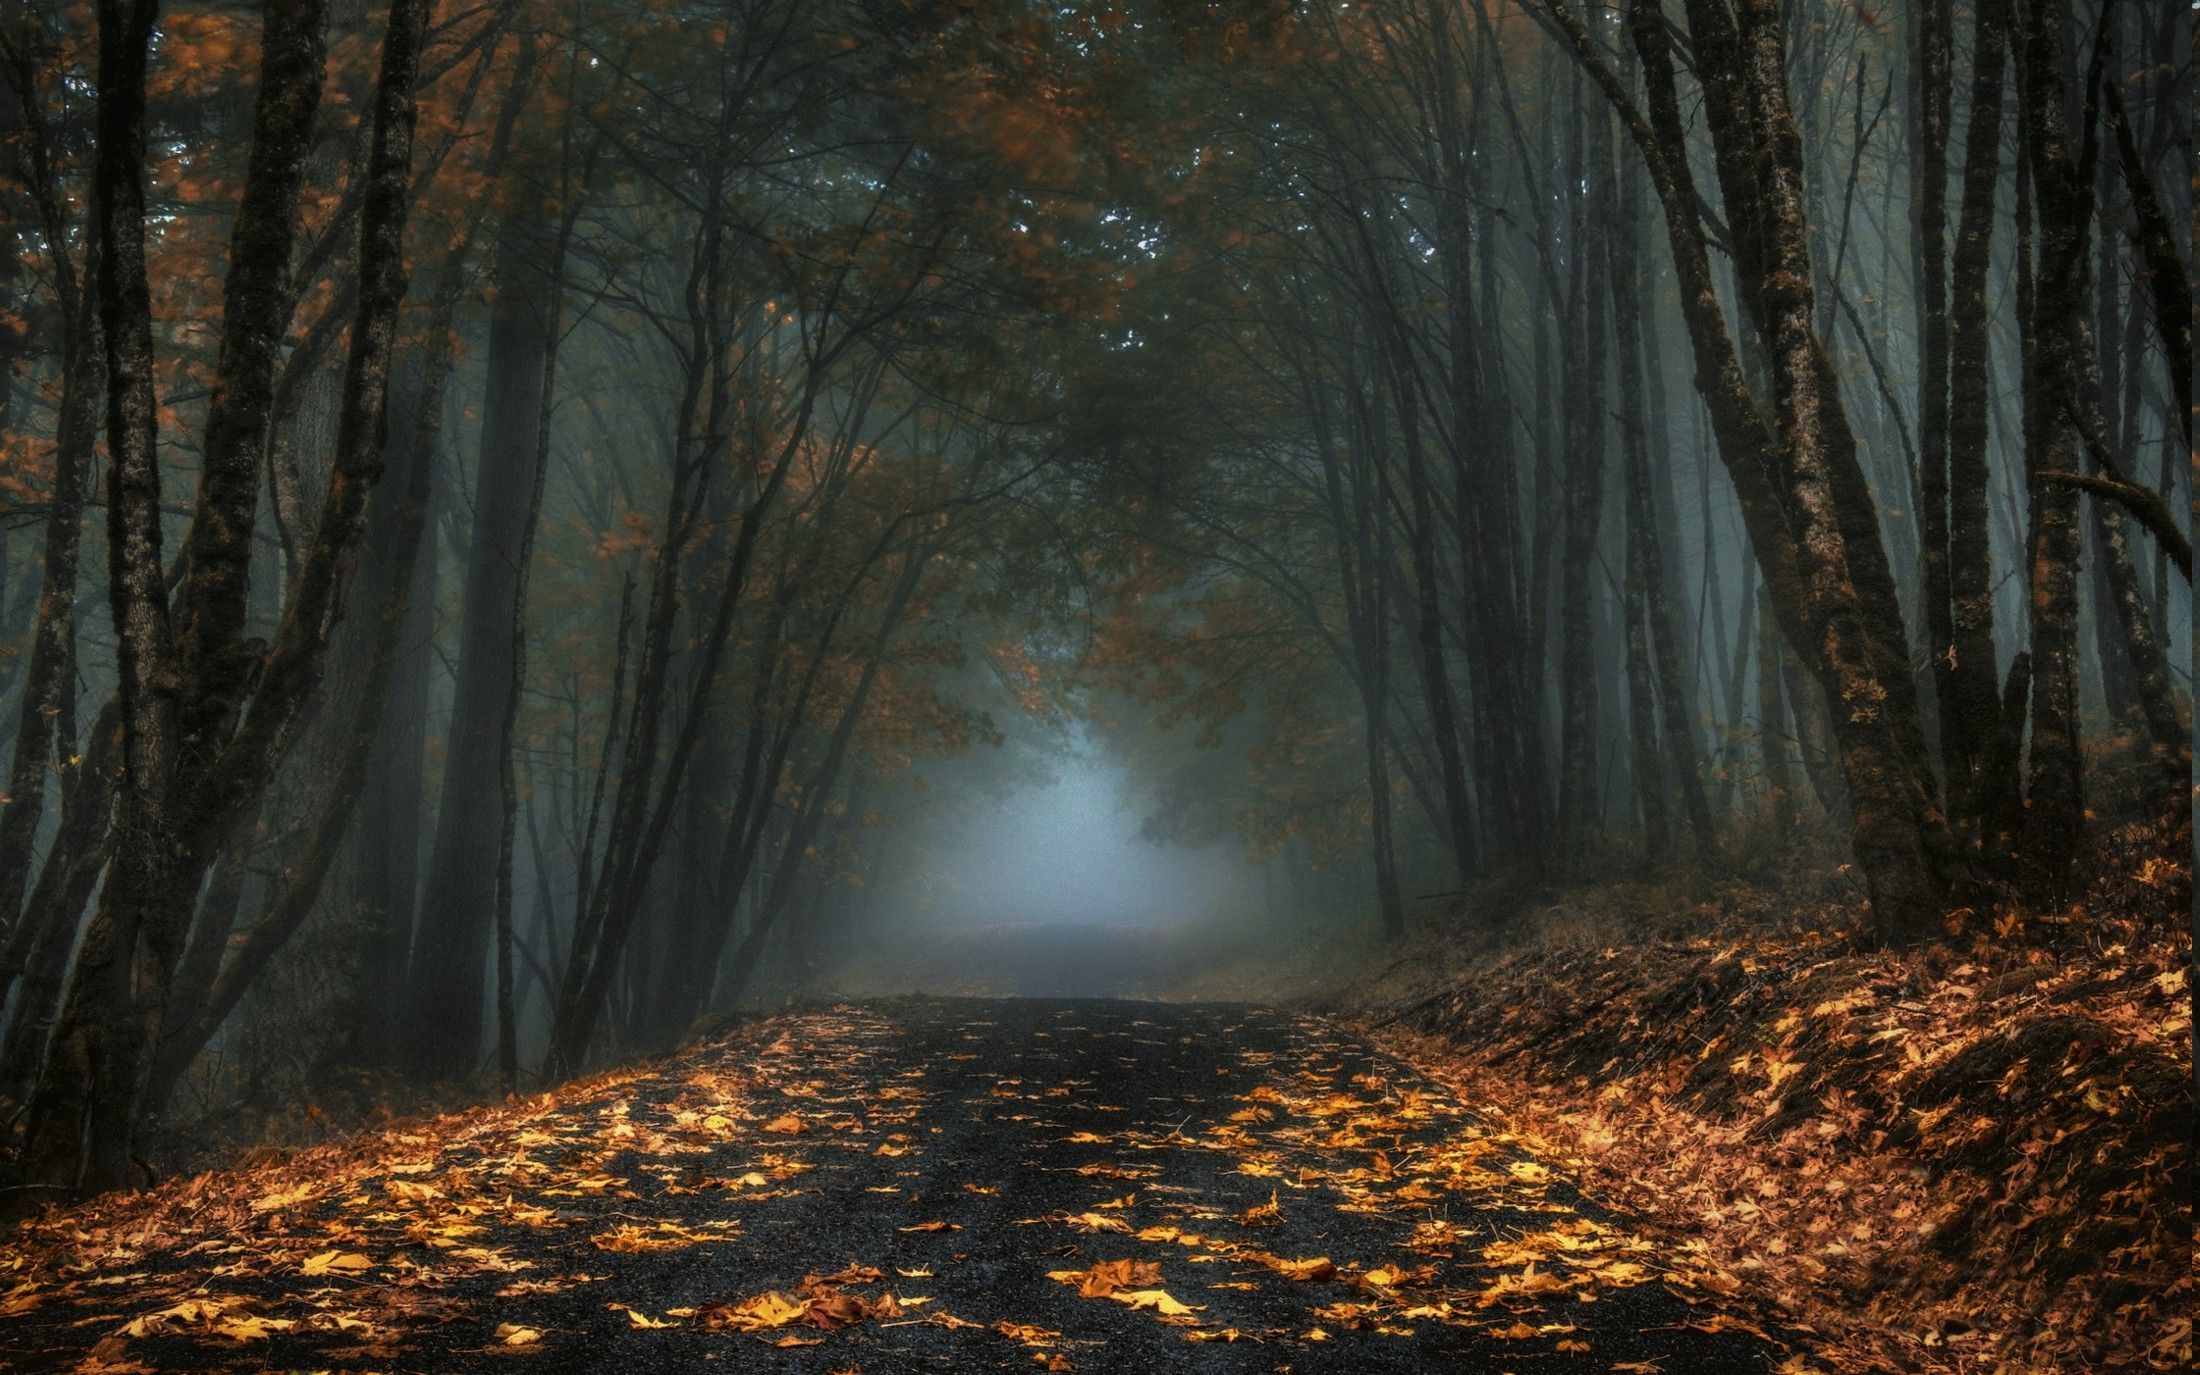 nature, Landscape, Mist, Road, Forest, Leaves, Fall, Trees, Dark, Morning Wallpapers HD / Desktop and Mobile Backgrounds